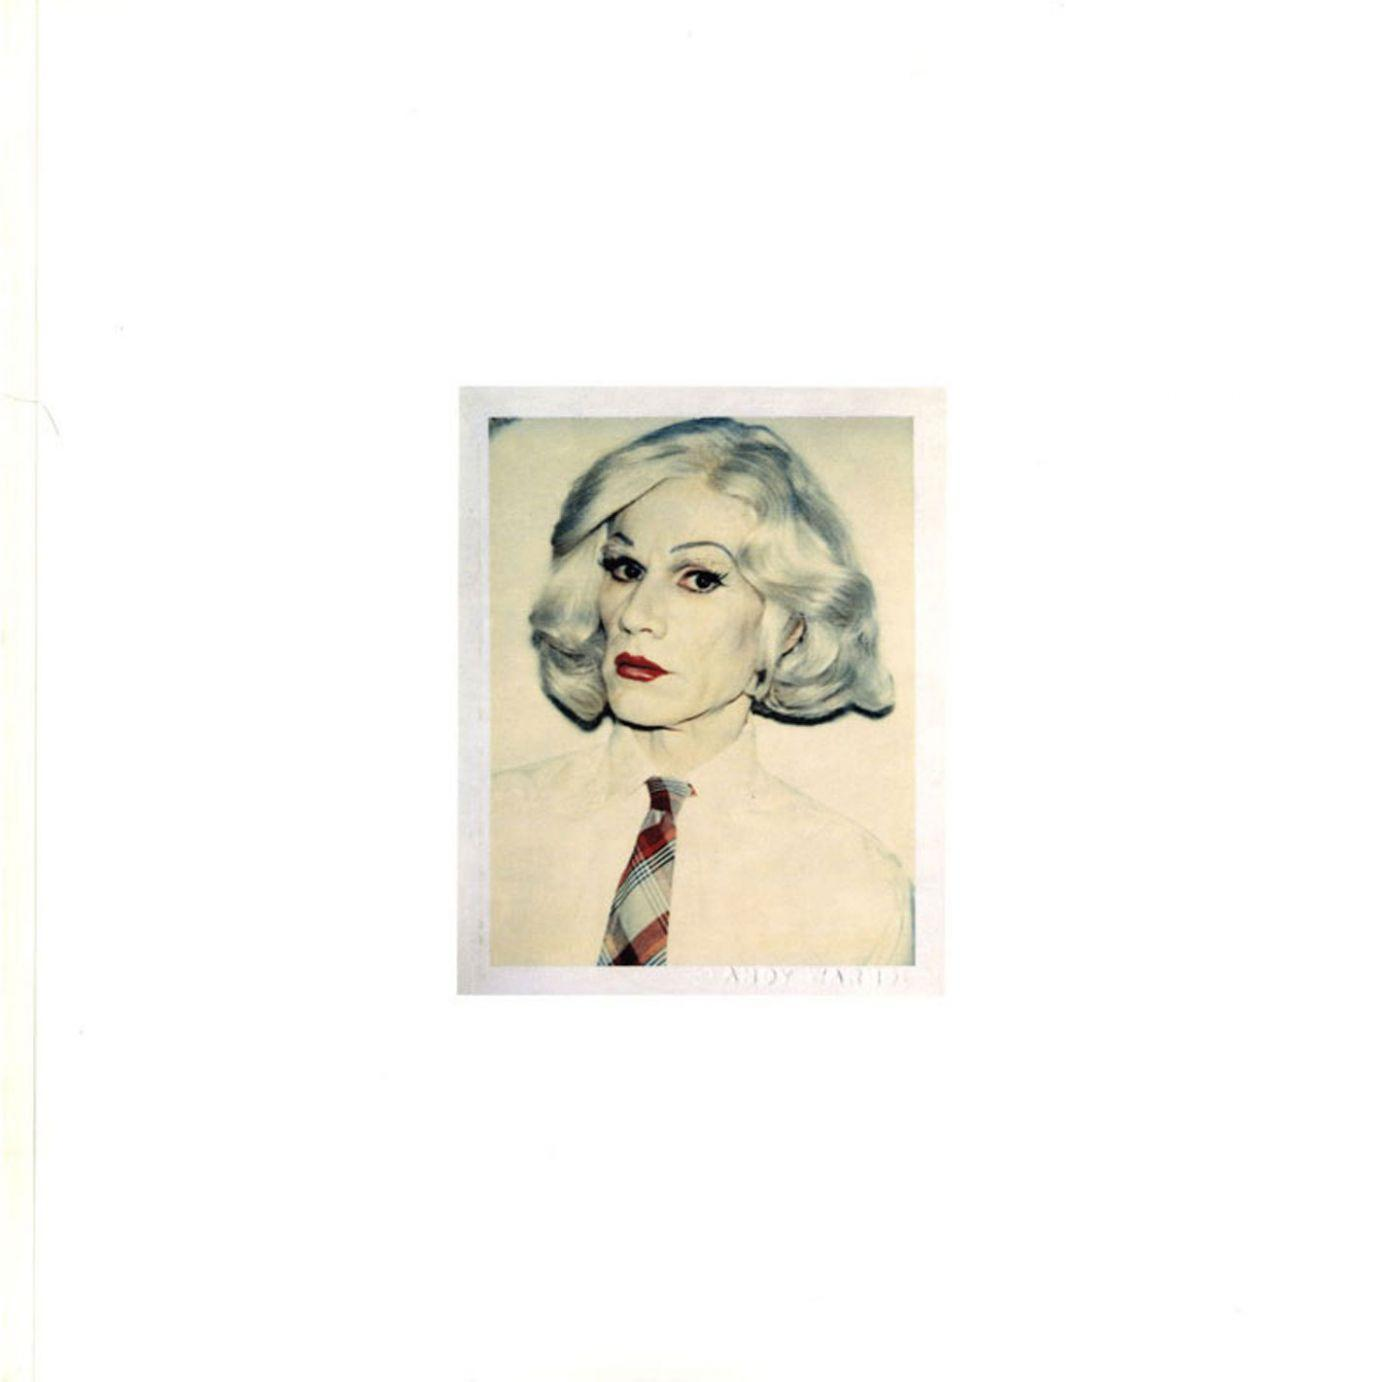 the andy warhol photographic legacy program